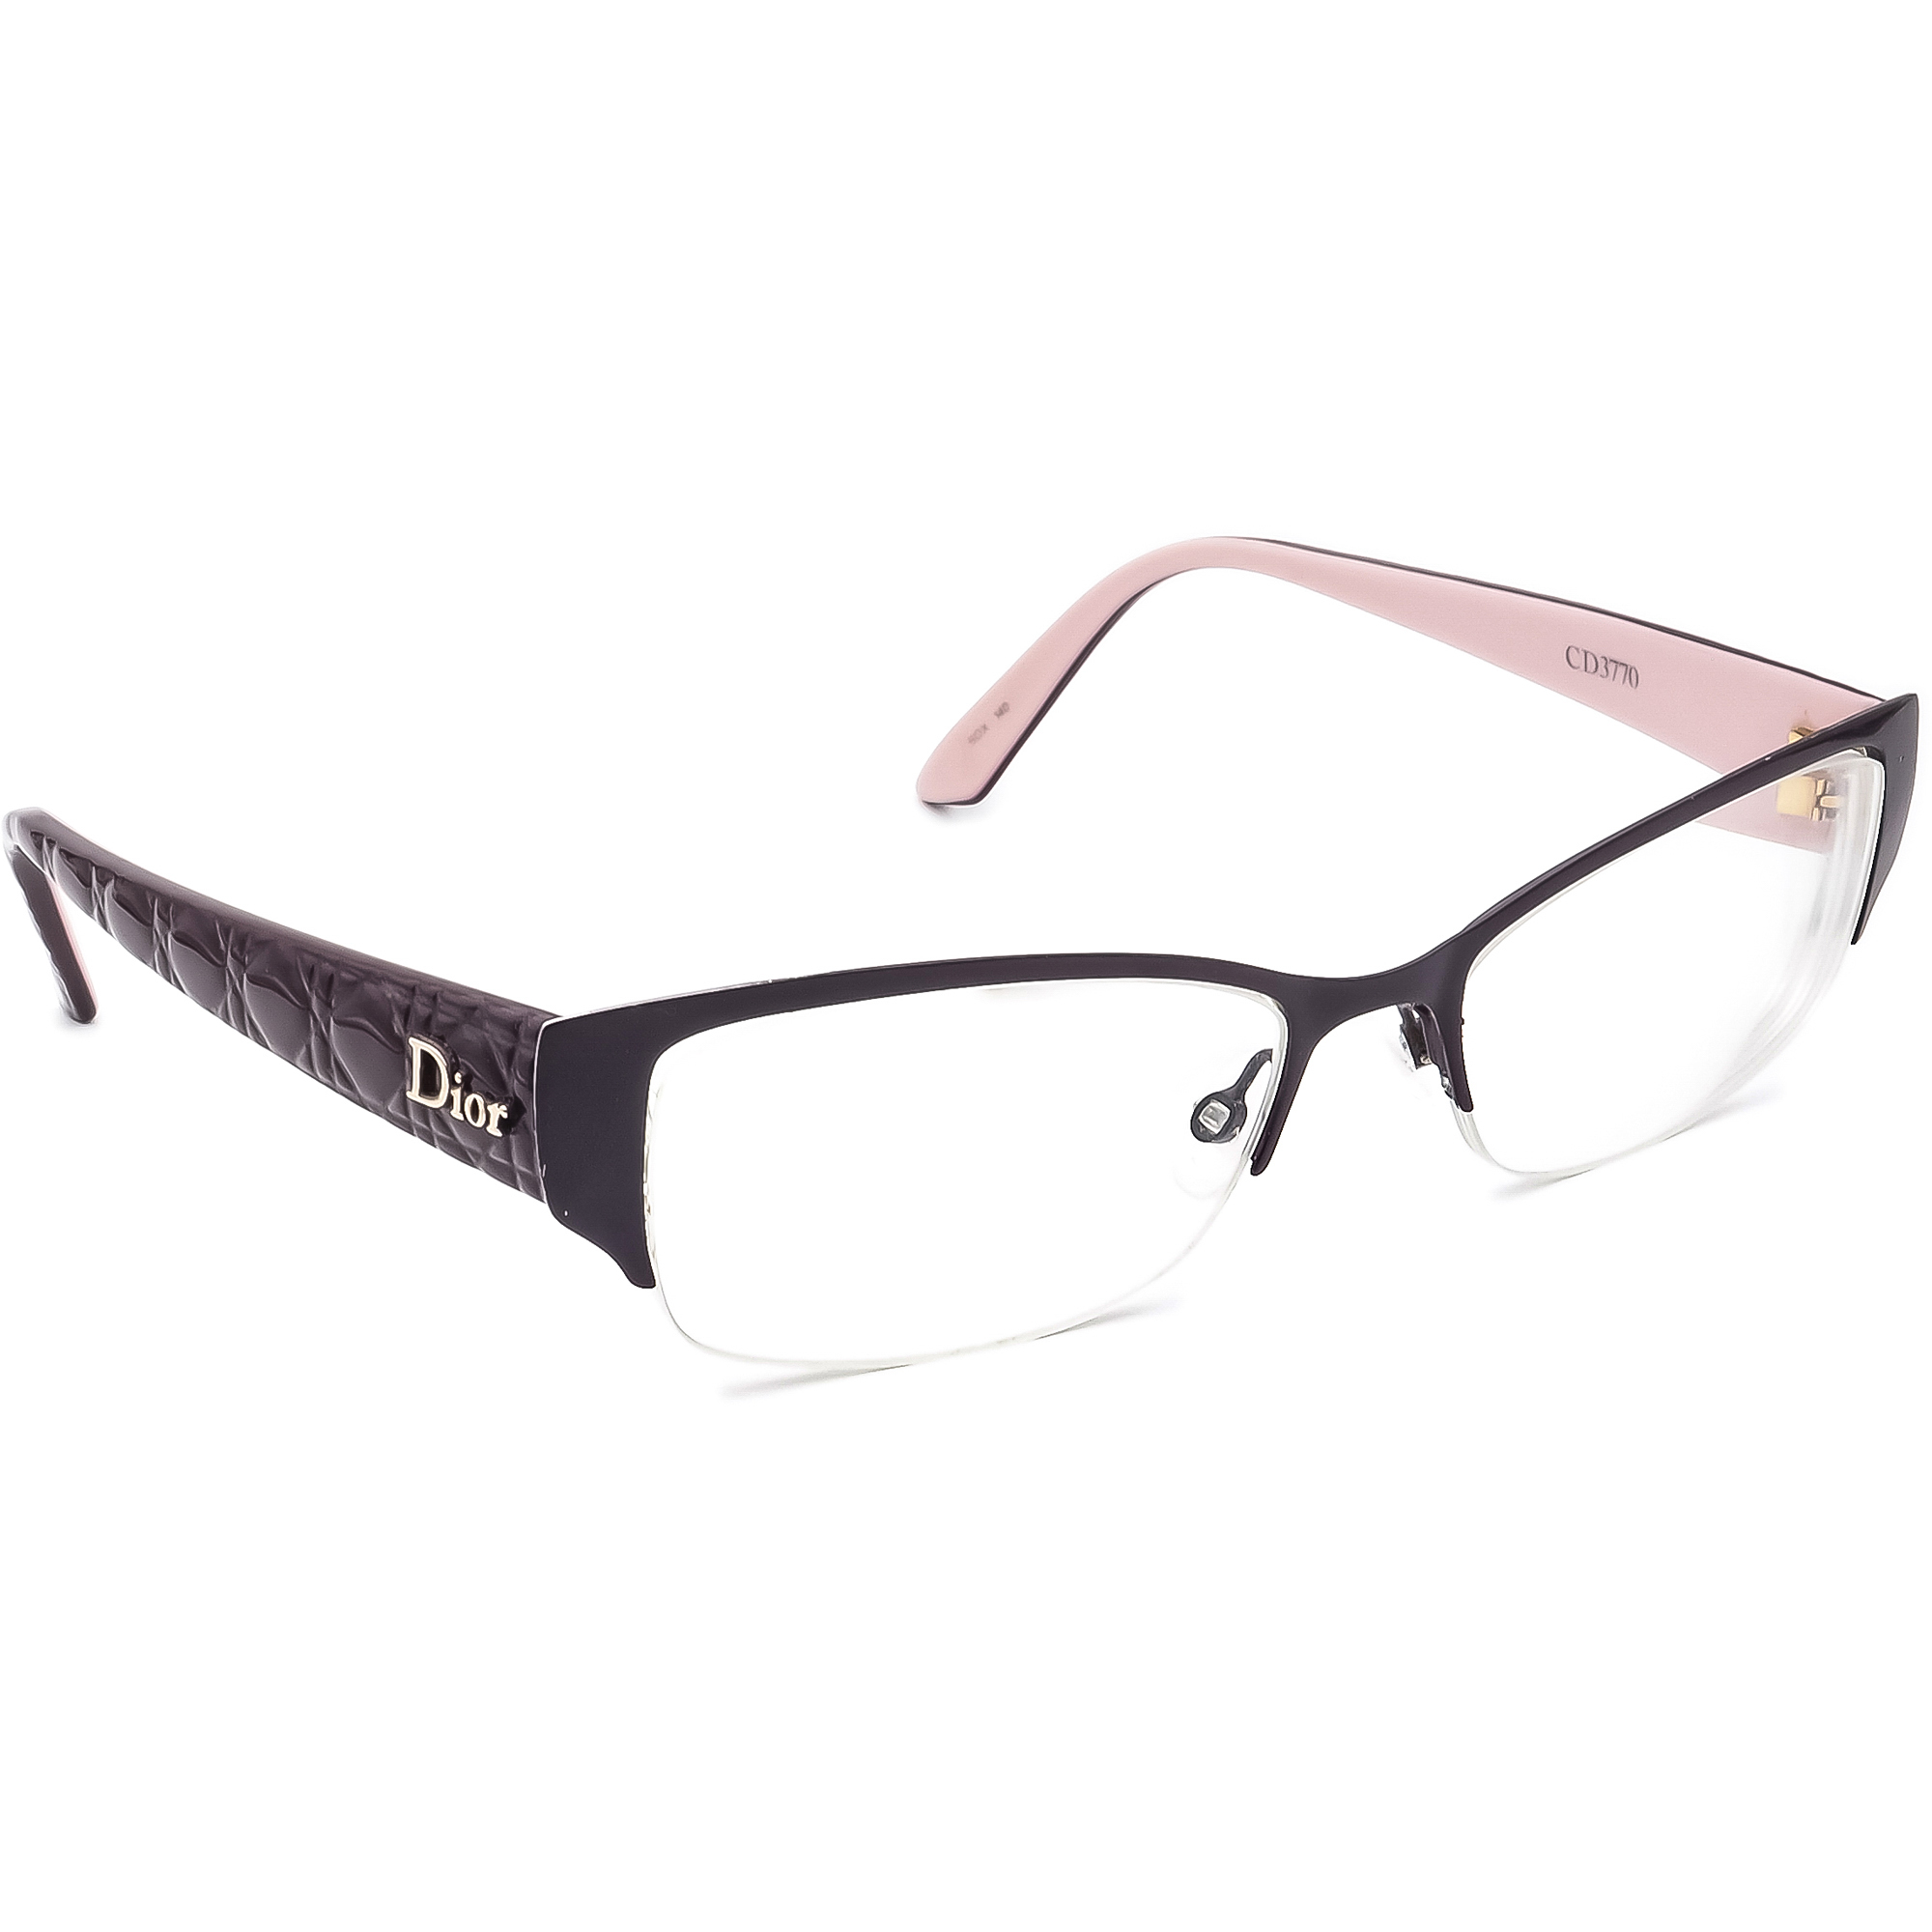 Christian Dior CD3770 Eyeglasses